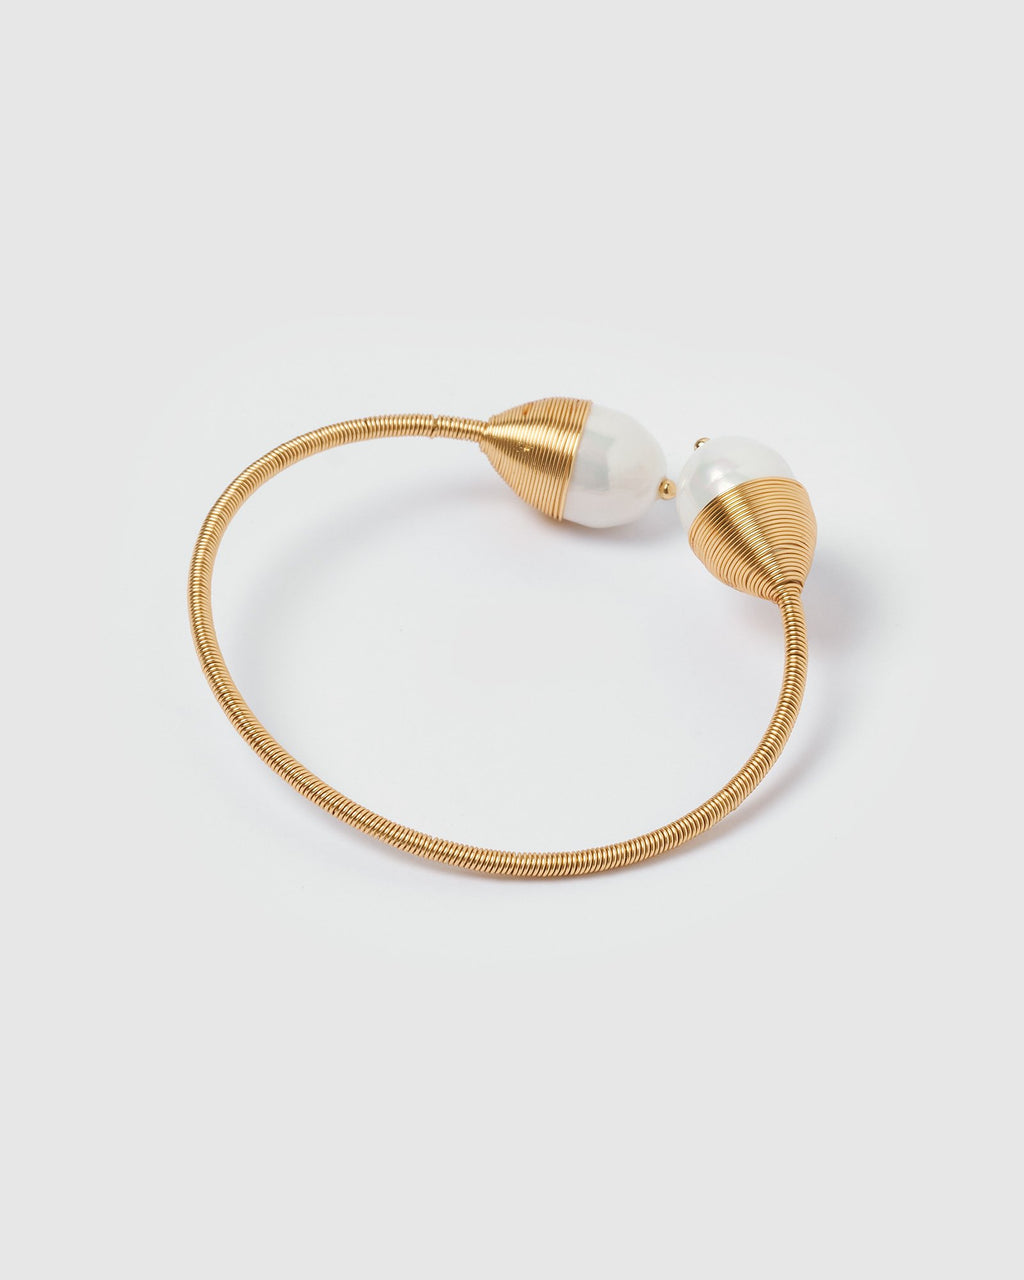 Miz Casa & Co Yara Wire Cuff With Freshwater Pearls Gold